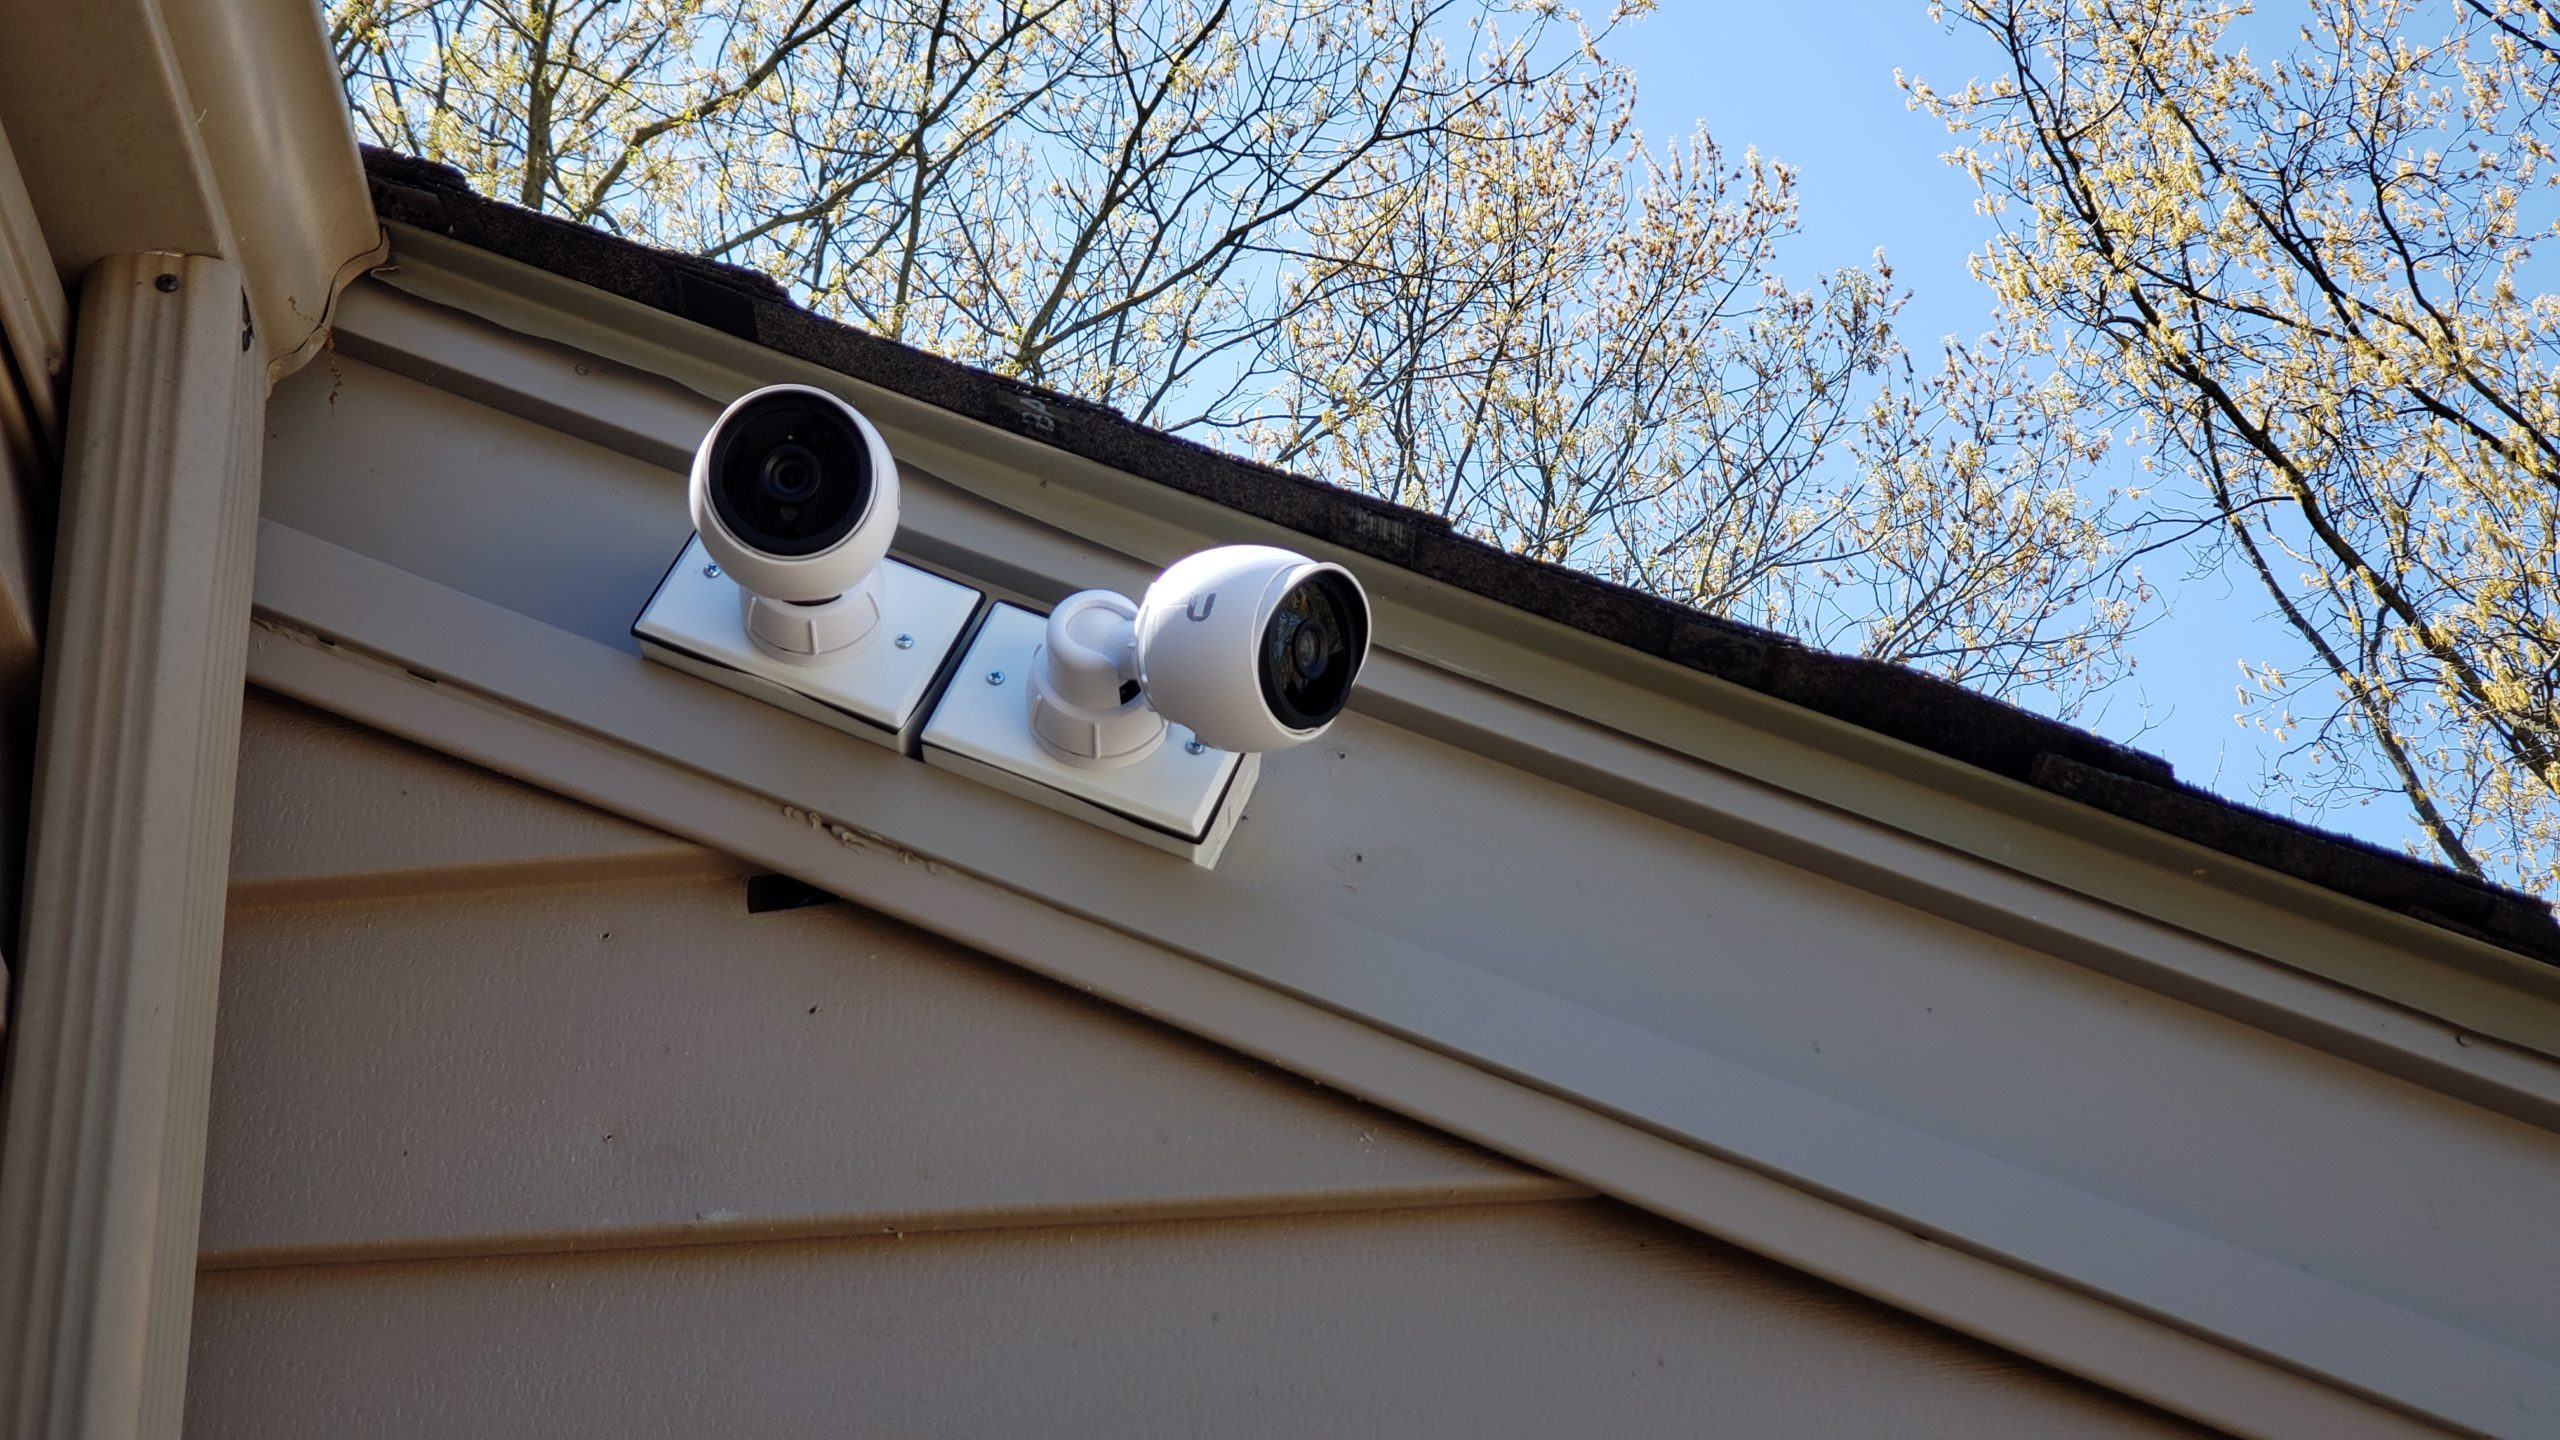 Smart Security Cameras